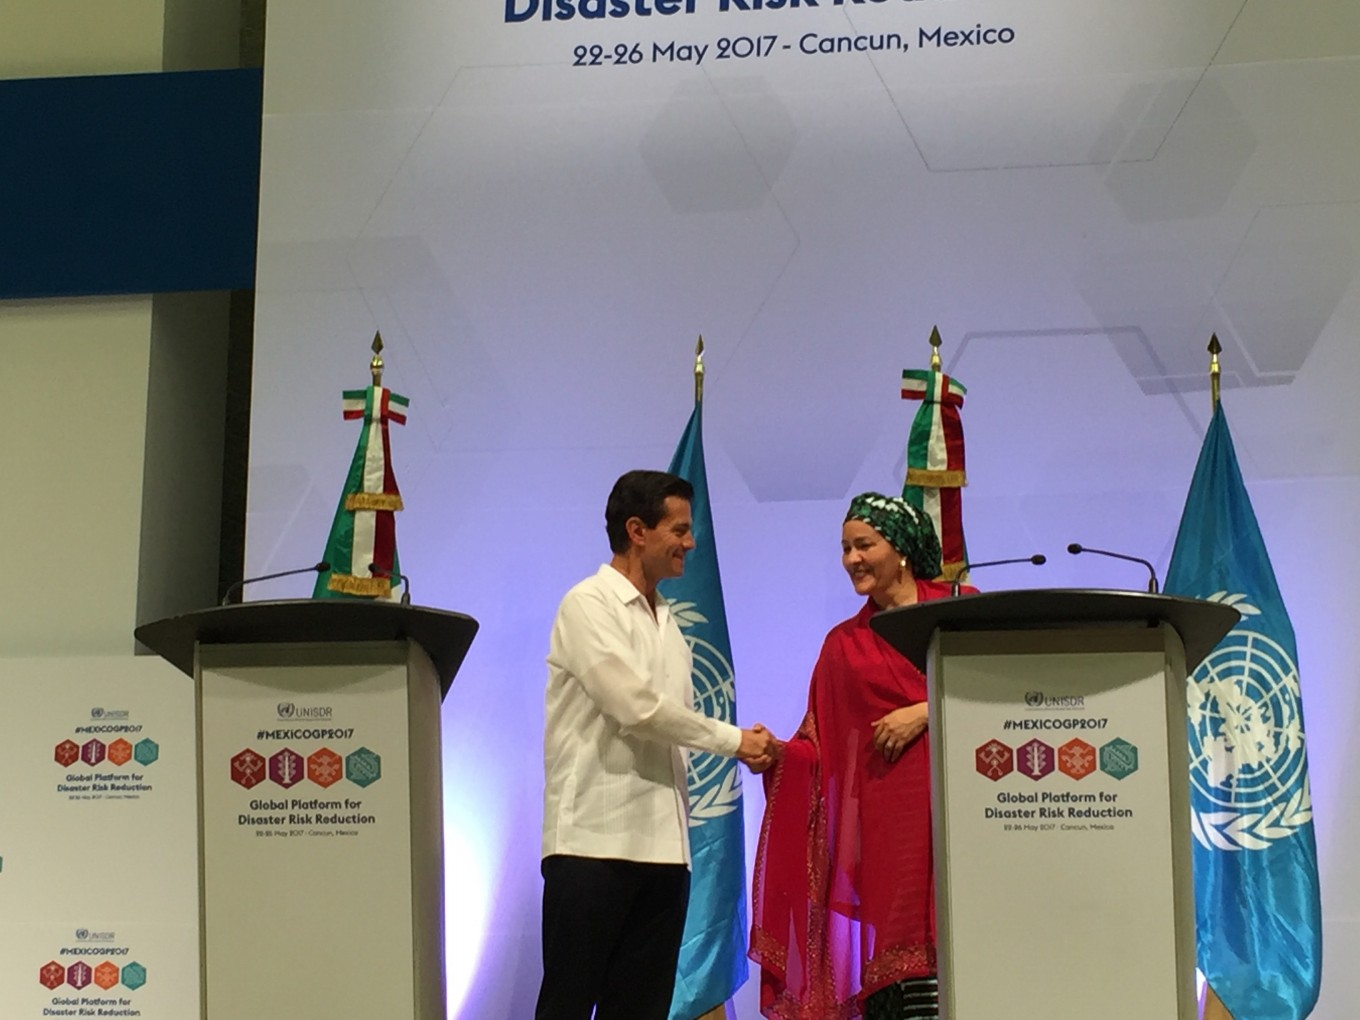 World leaders highlight disaster risk reduction challenges in communiqué